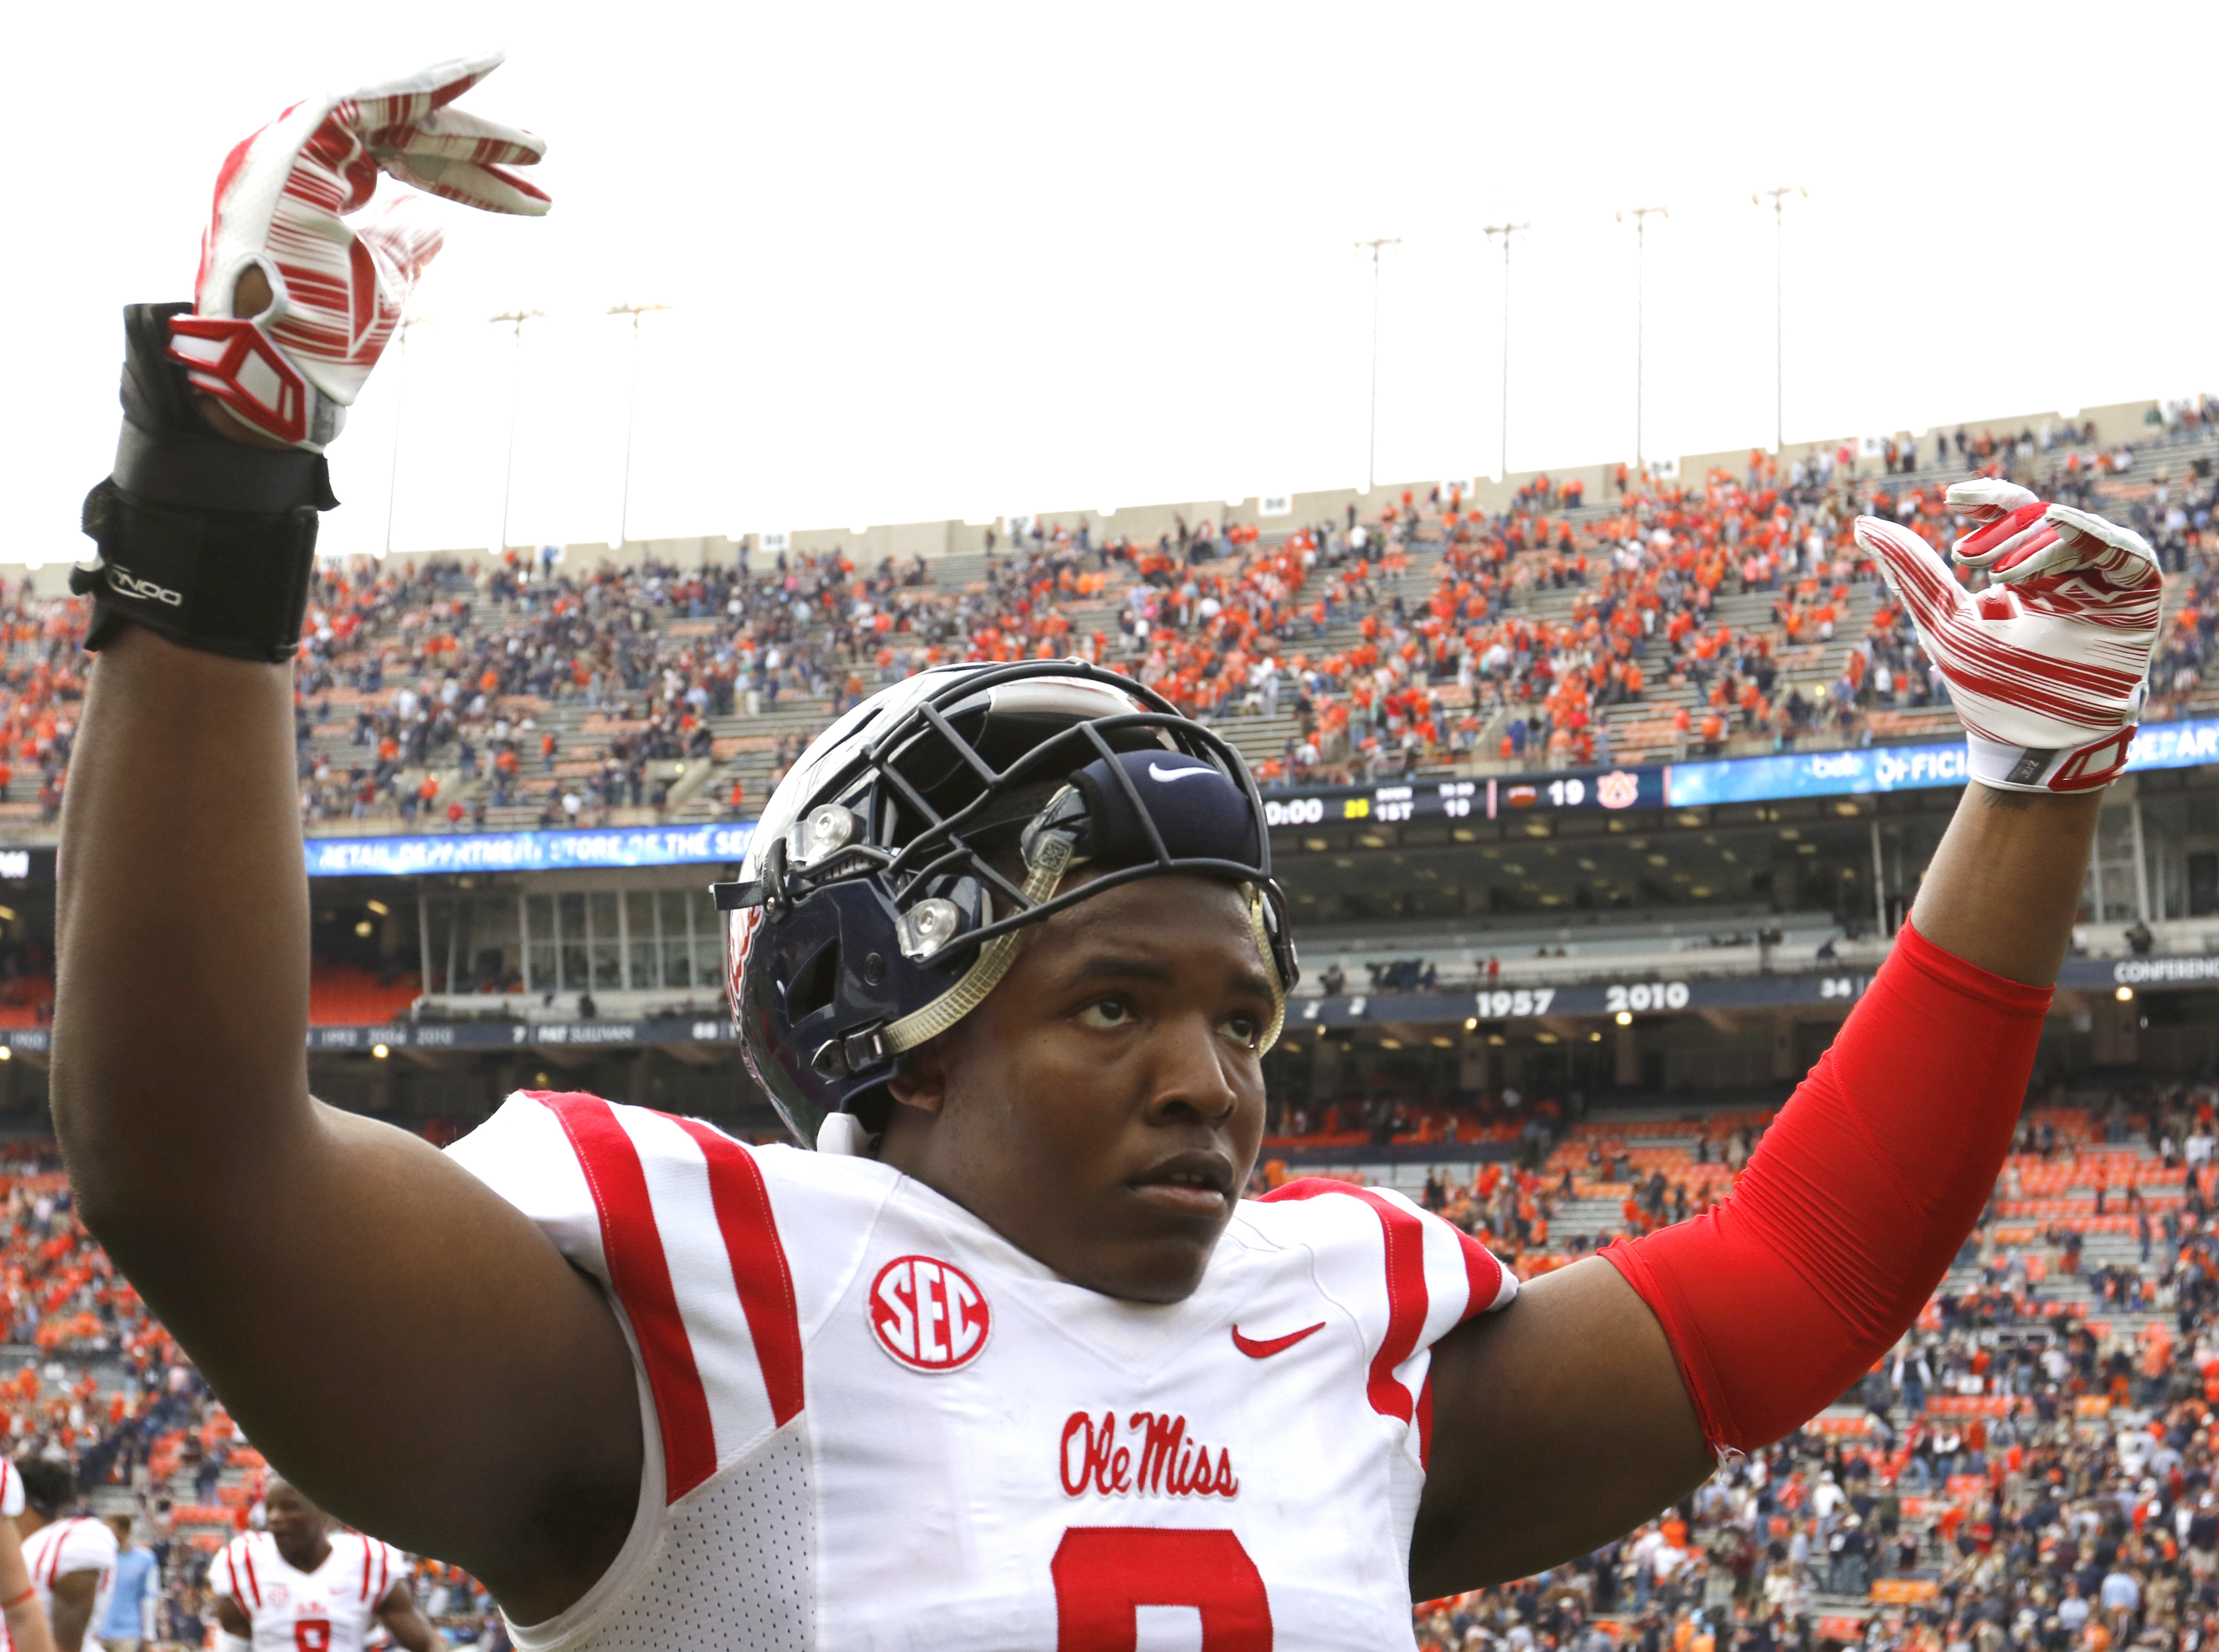 Mississippi defensive tackle Breeland Speaks (9) celebrates after they defeated Auburn 27-19 in an NCAA college football game, Saturday, Oct. 31, 2015, in Auburn, Ala. (AP Photo/Butch Dill)